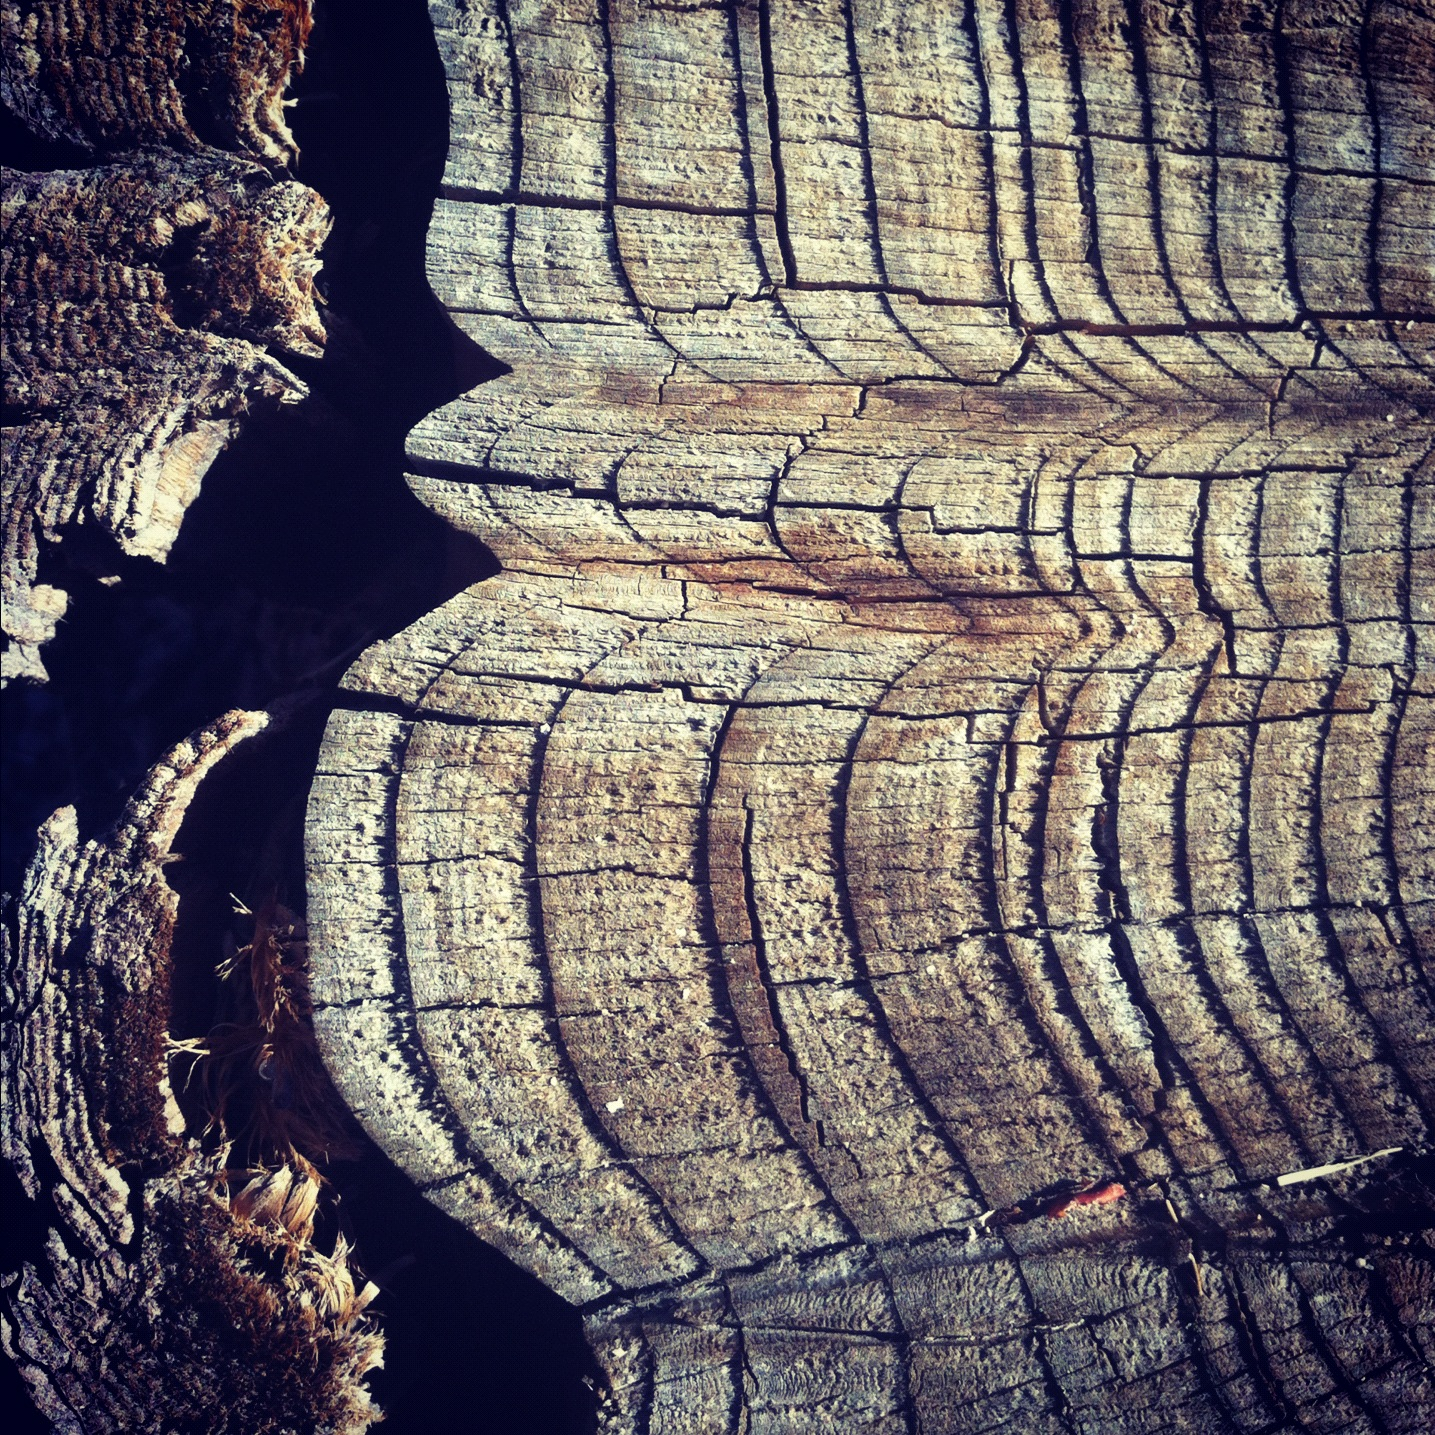 Texture of Tree Stump @texturestudy